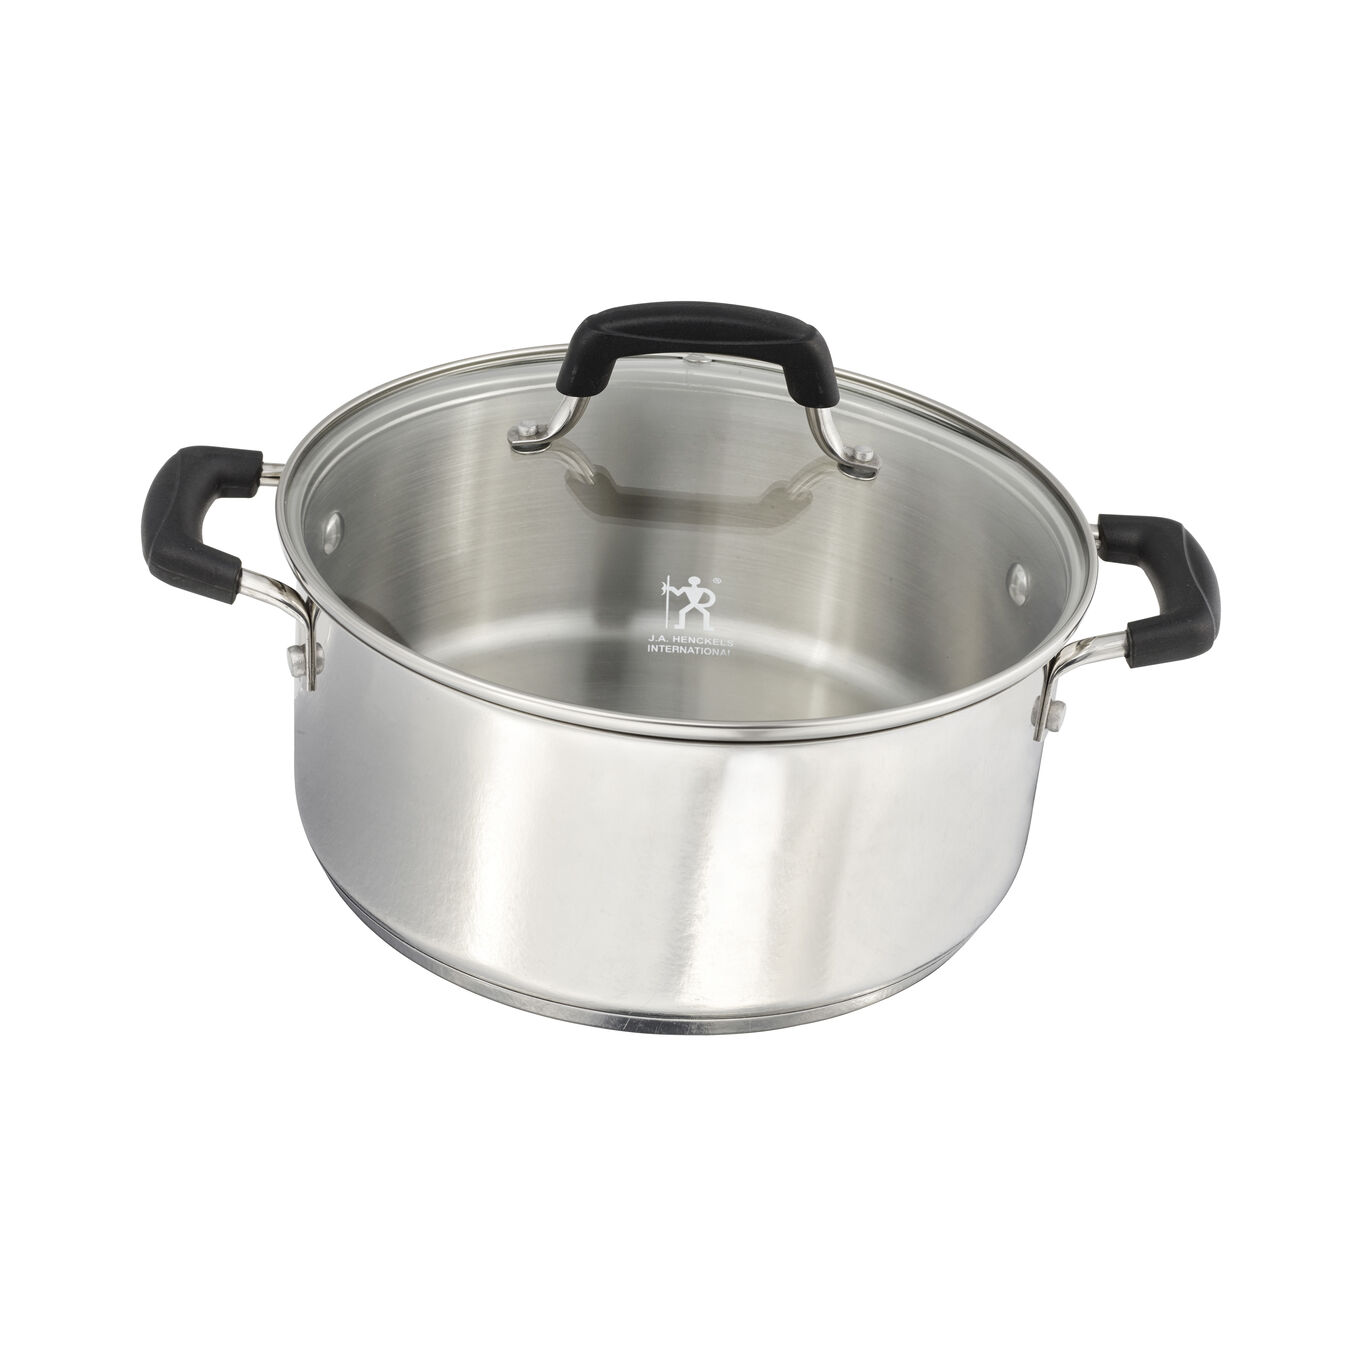 10 Piece Stainless steel Cookware set,,large 3